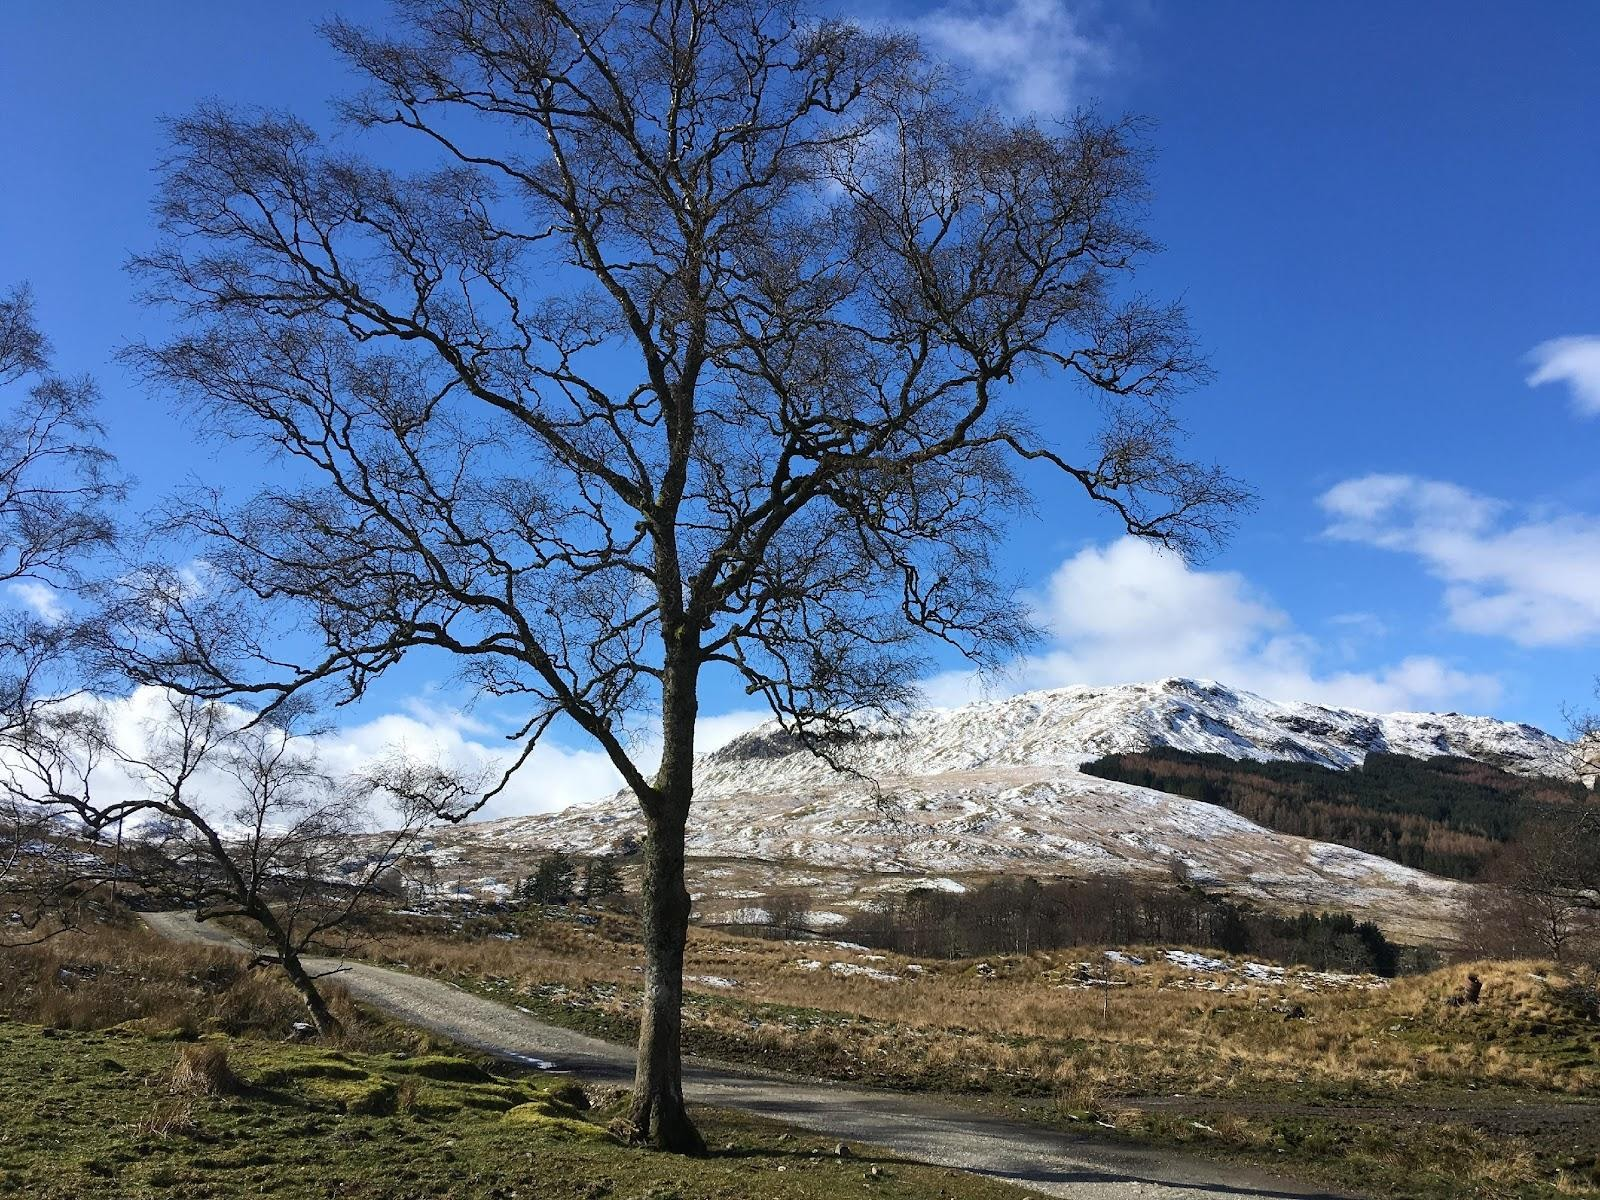 Leafless tree in front of snow covered hill with blue sky. A sense of isolation and change.